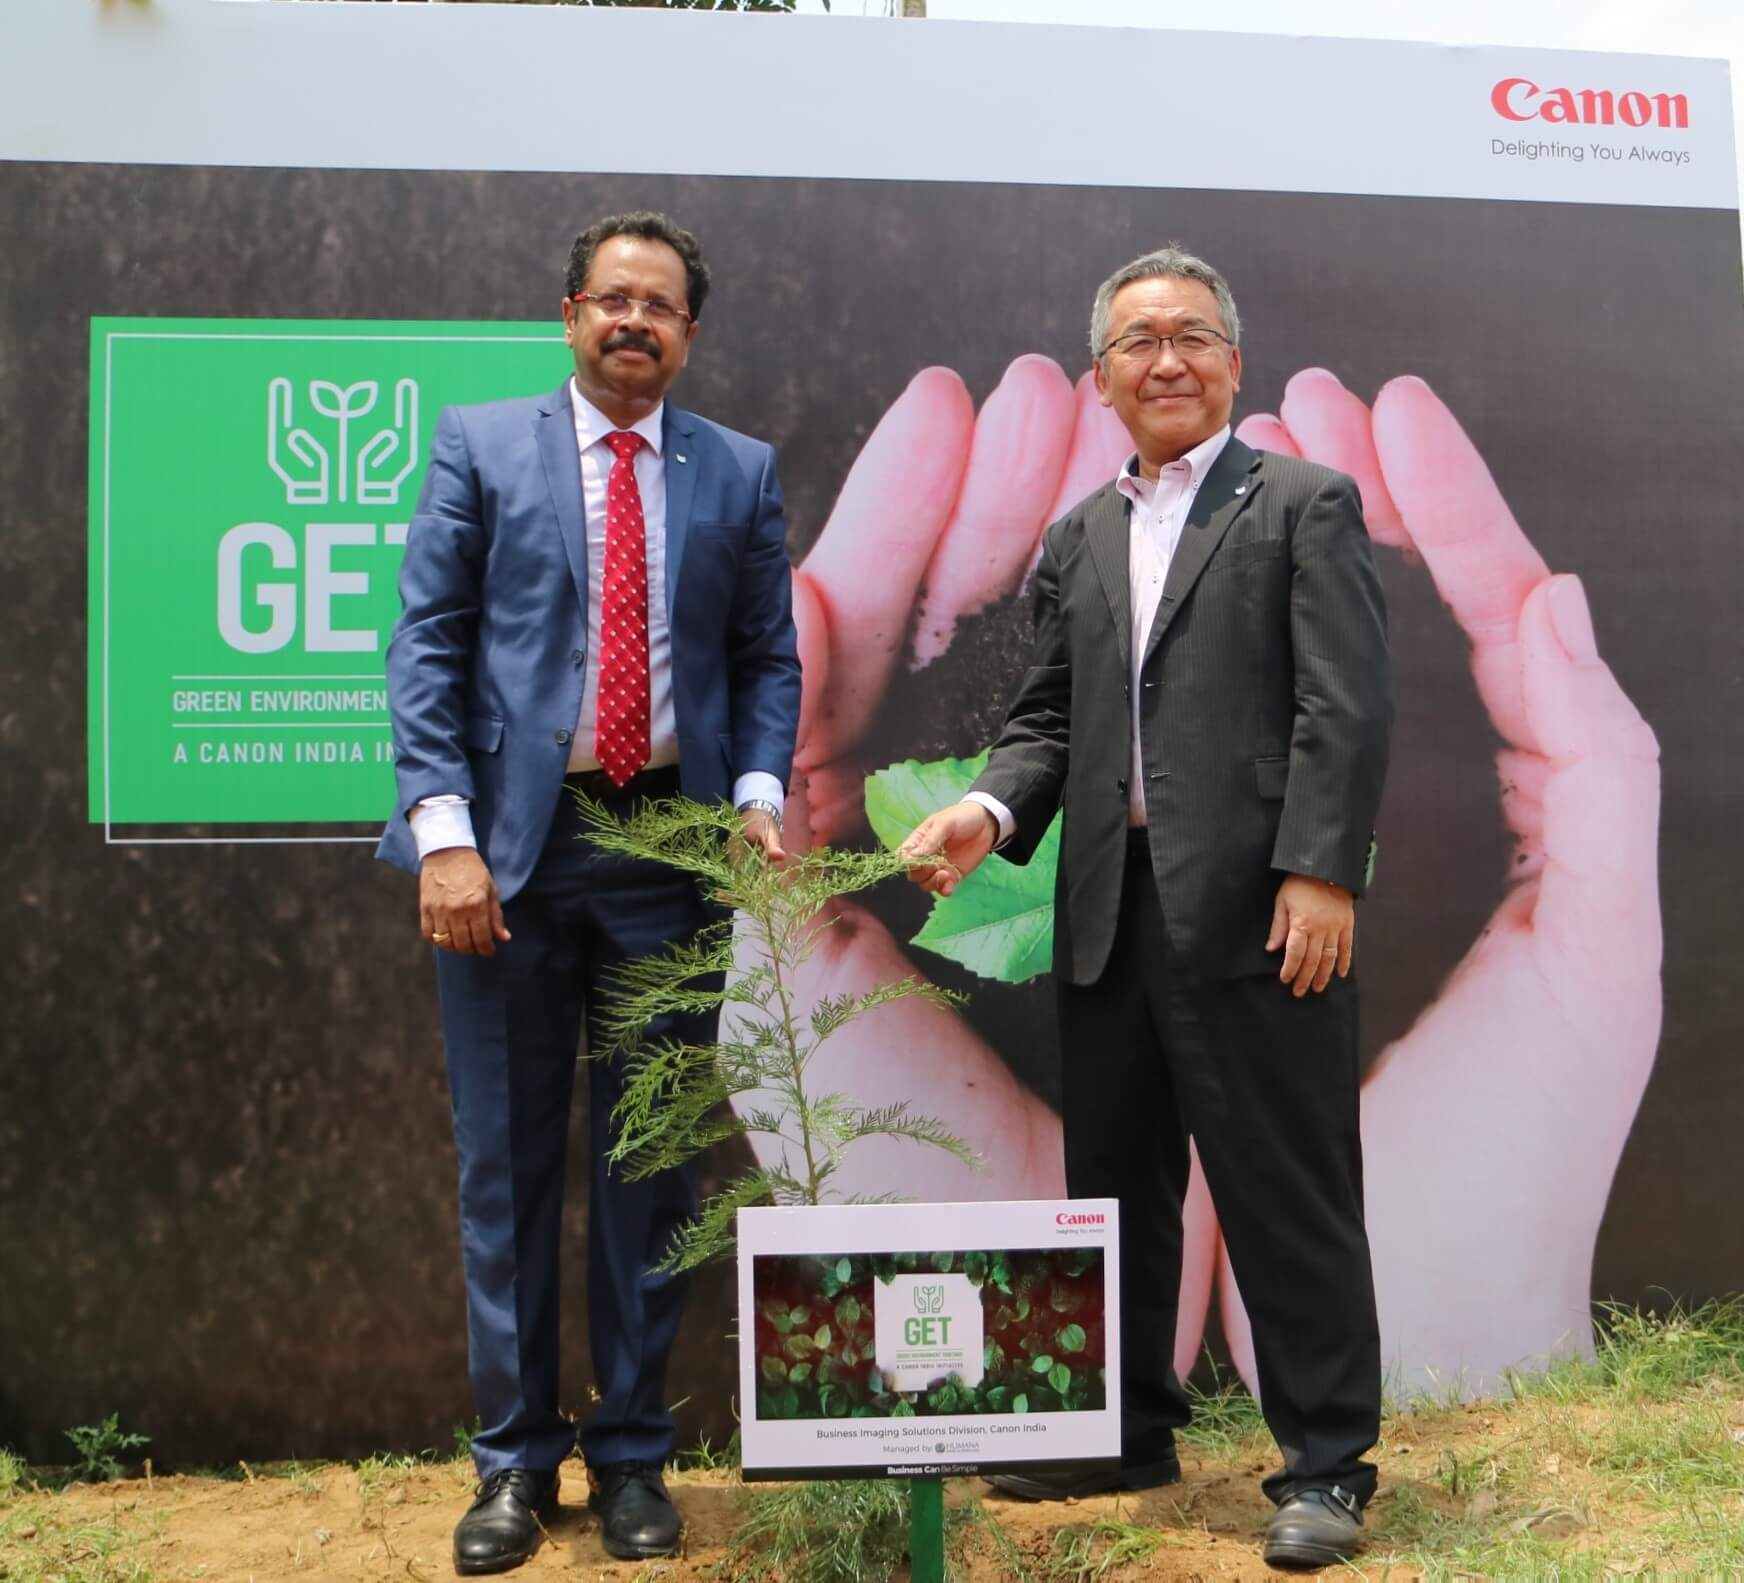 Canon Announces the Launch of the Green Environment Together